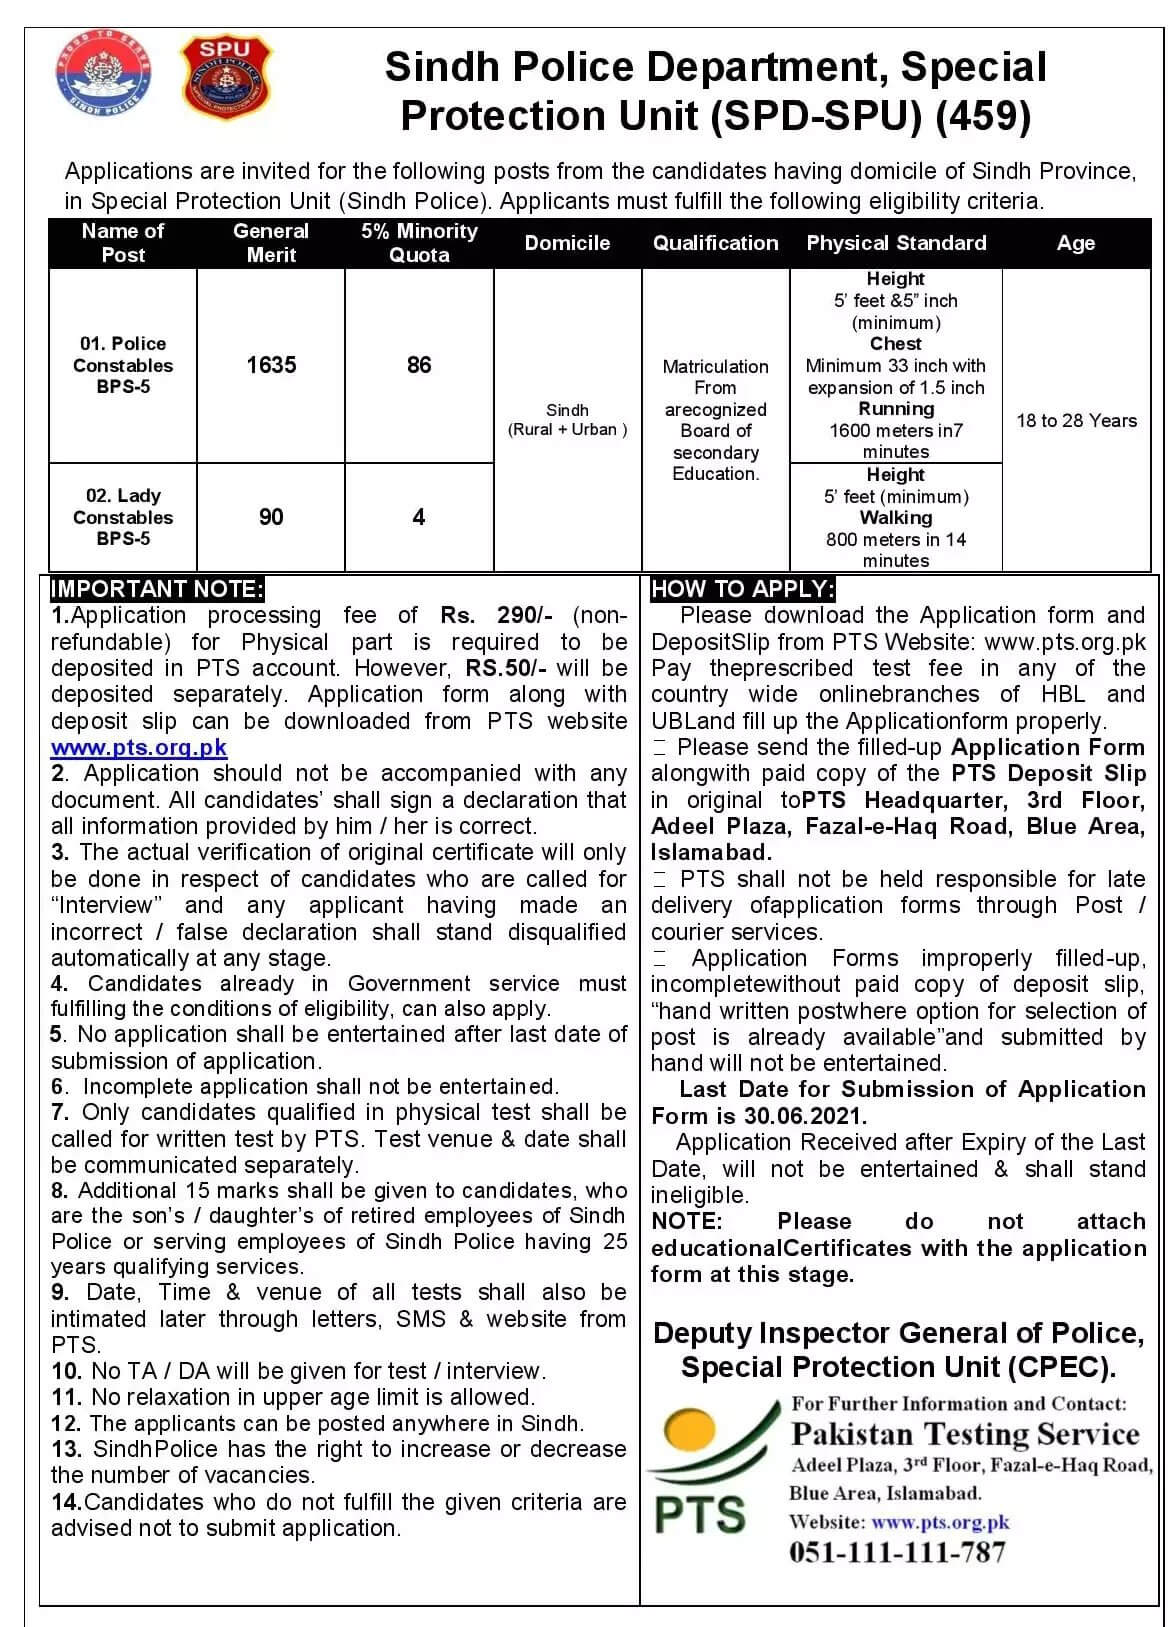 Special Protection Unit SPU Sindh Police Jobs 2021 in Pakistan